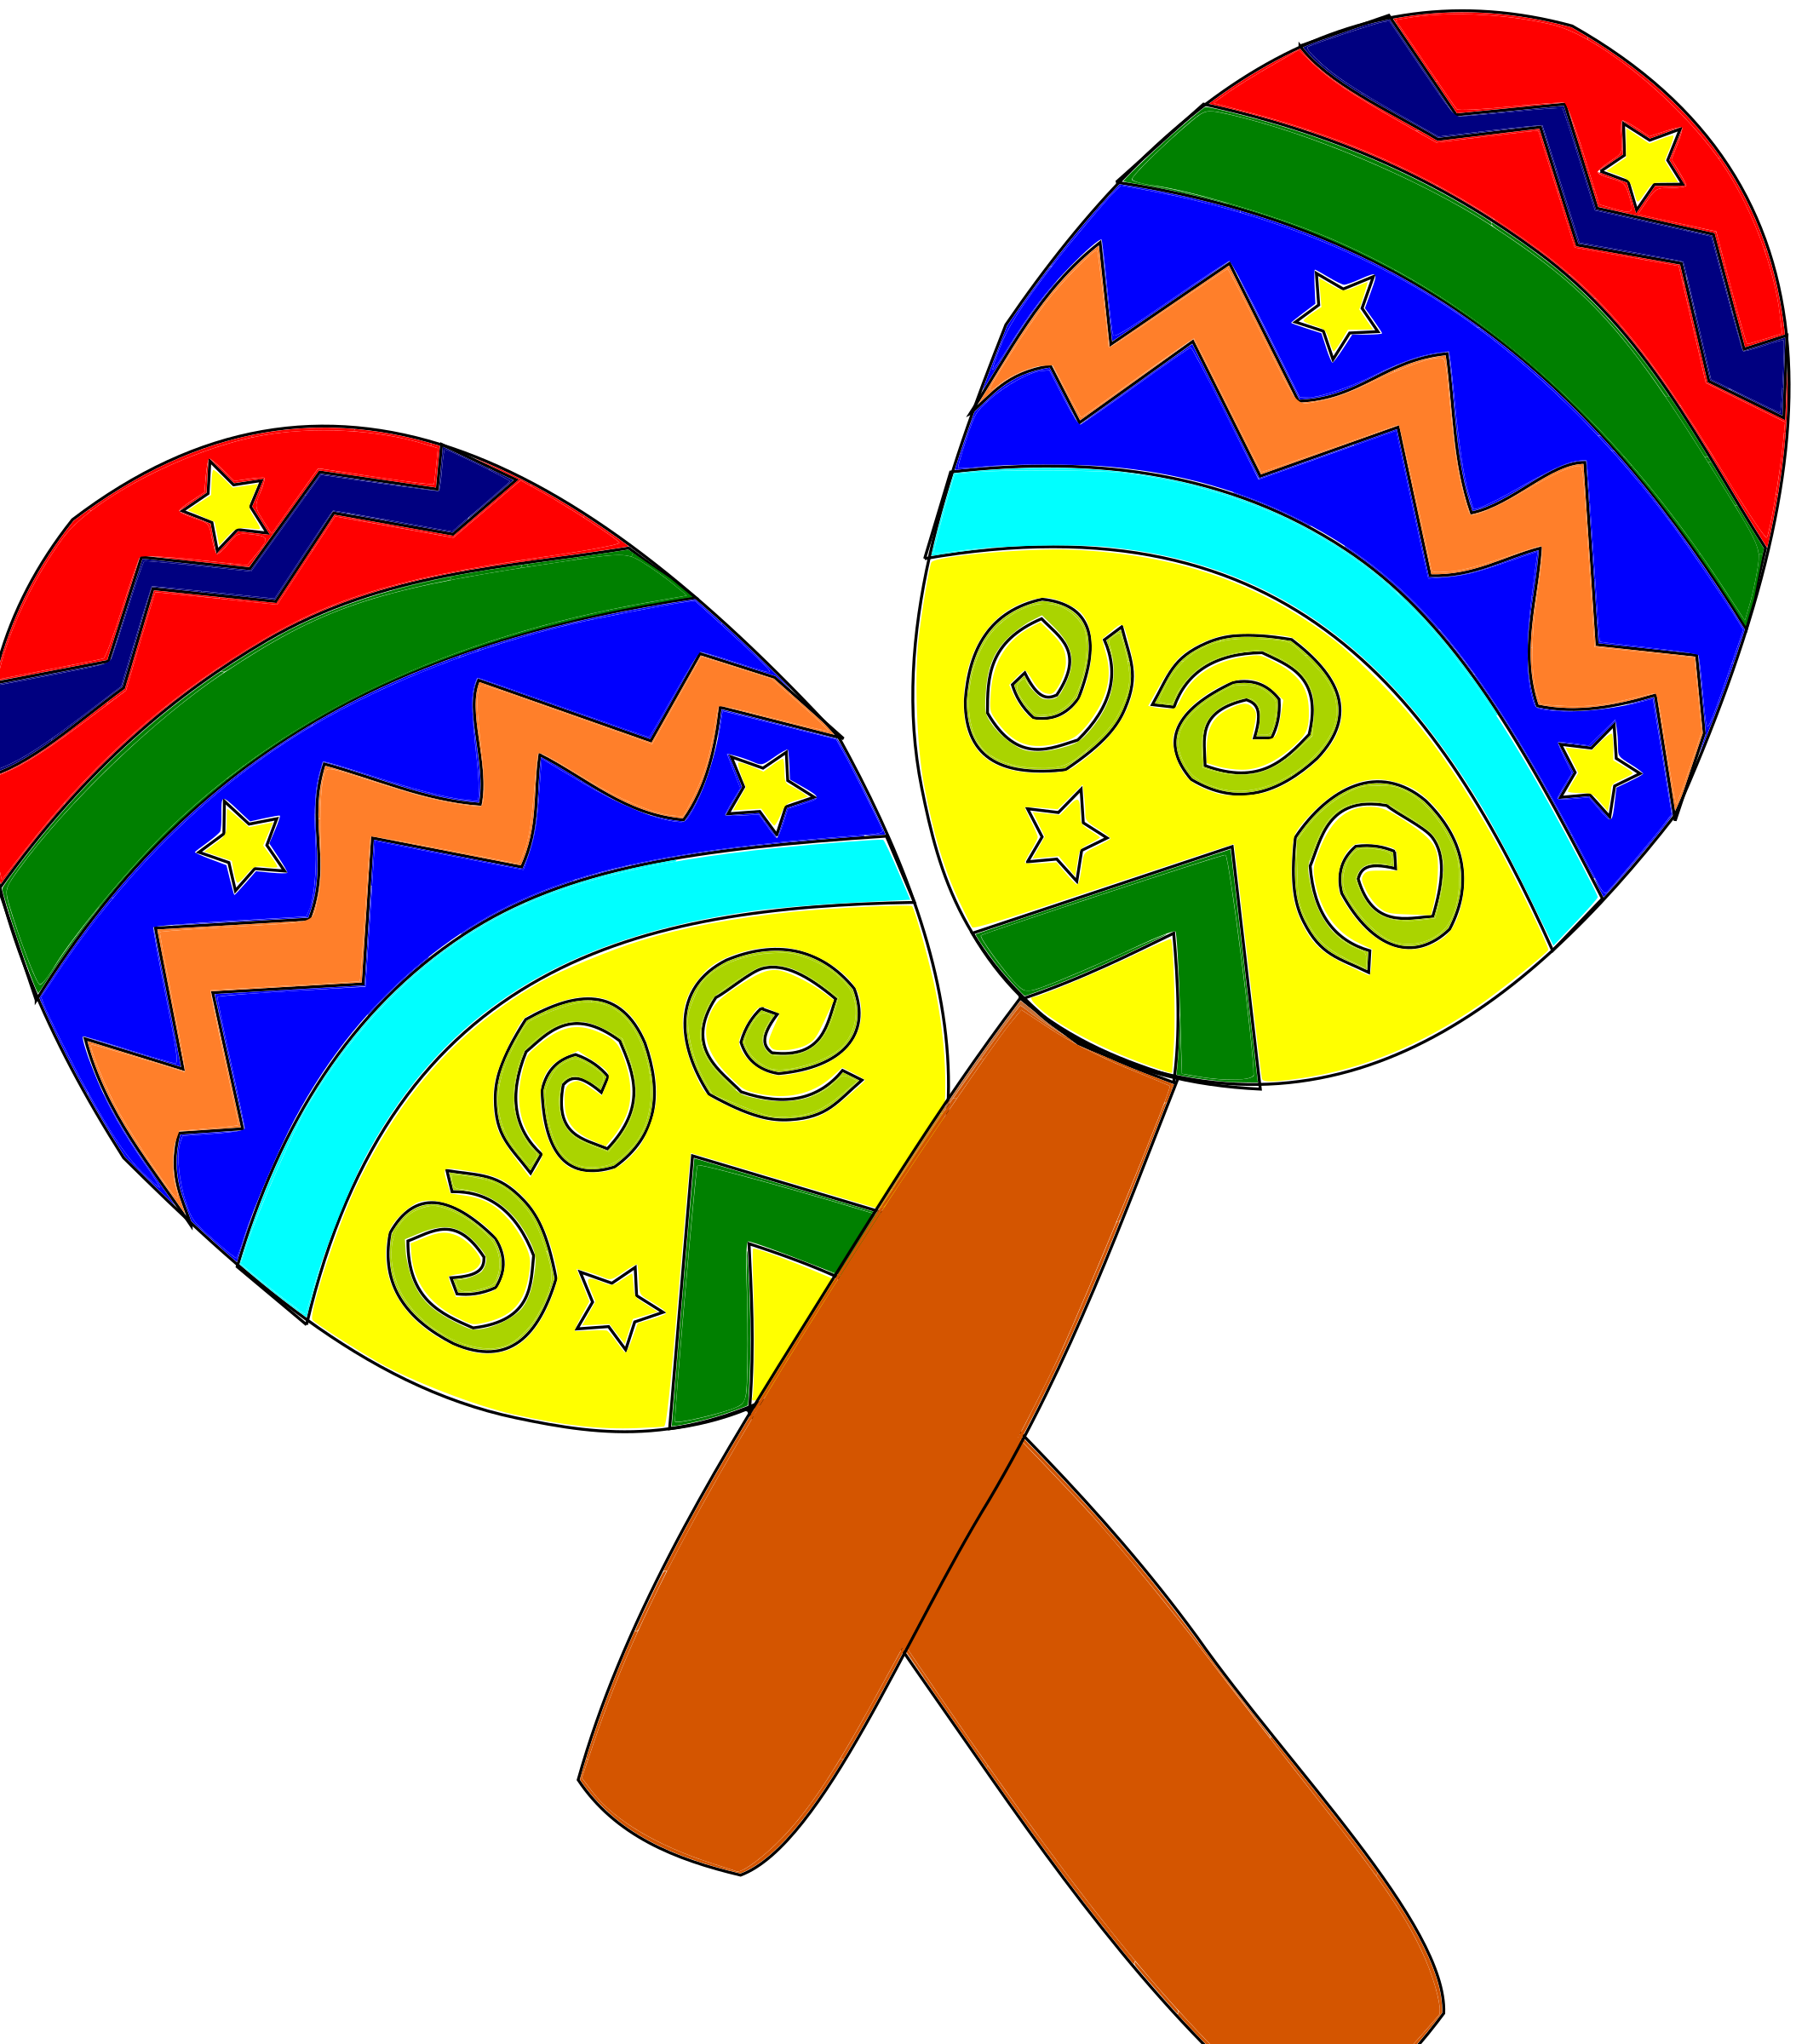 maracas clipart independence mexican